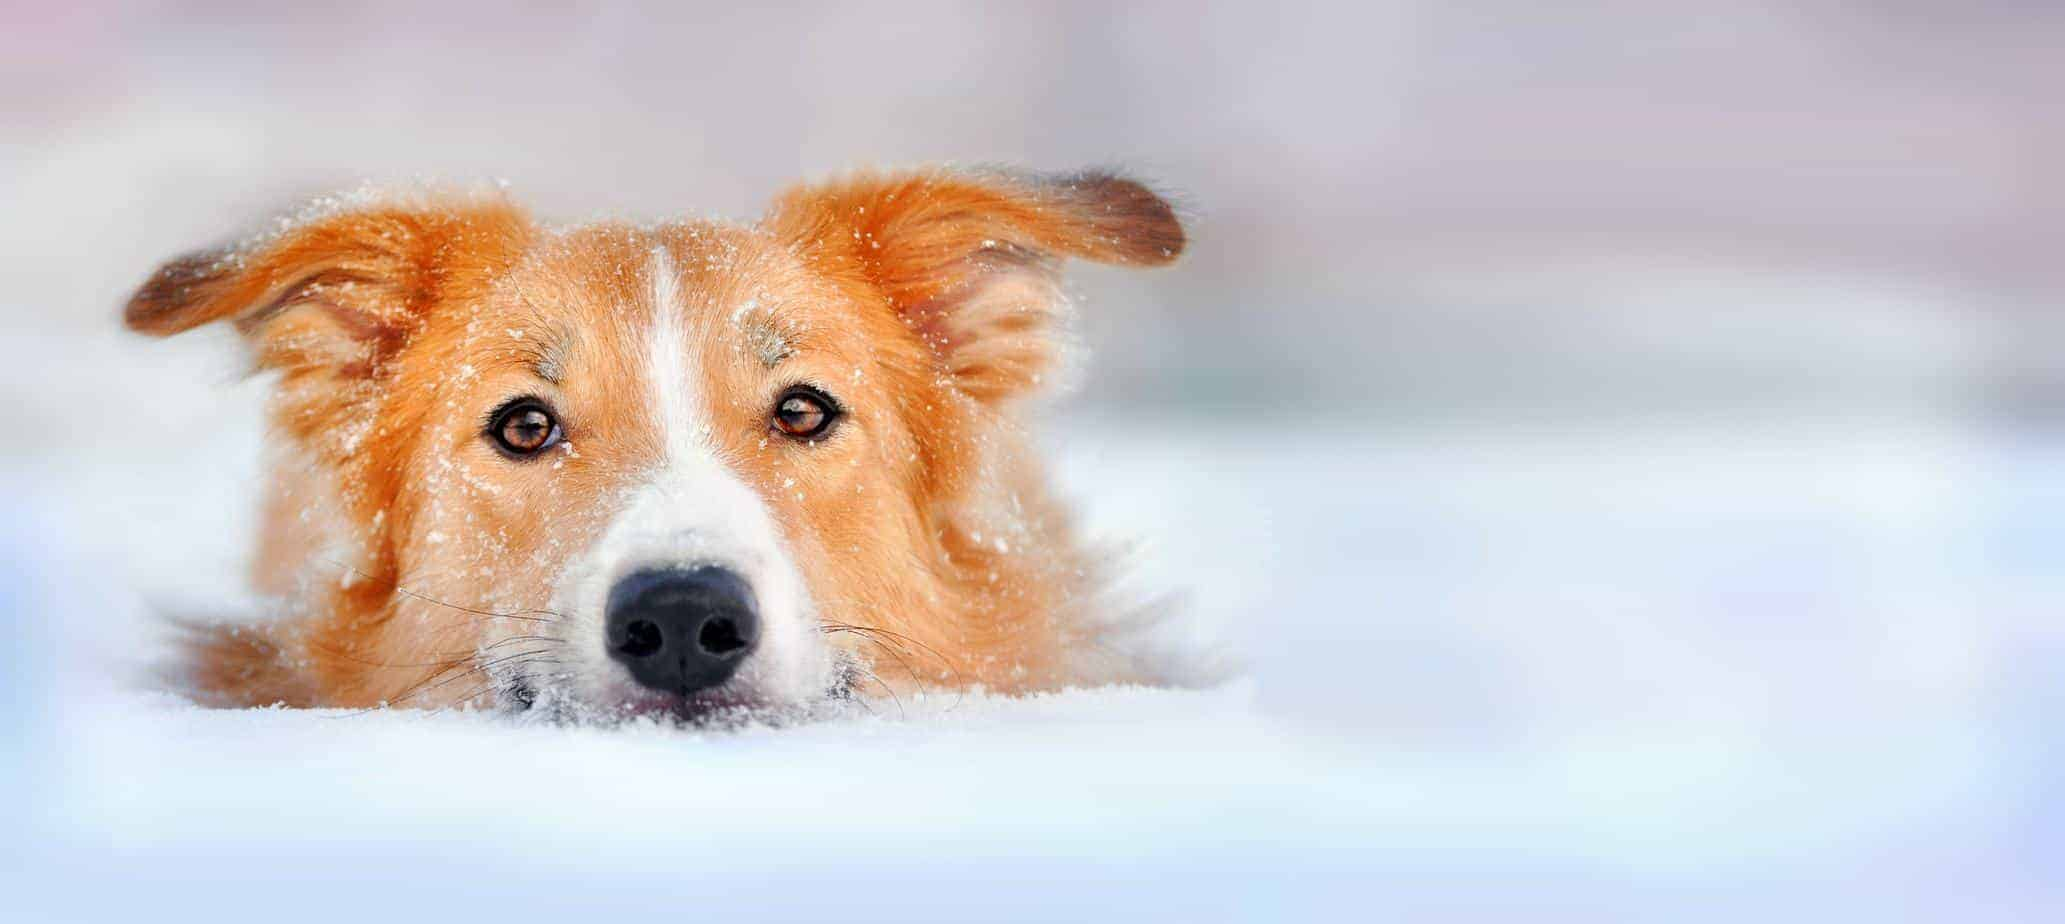 dog cold weather dangers include hypothermia, dry skin and cracked paws